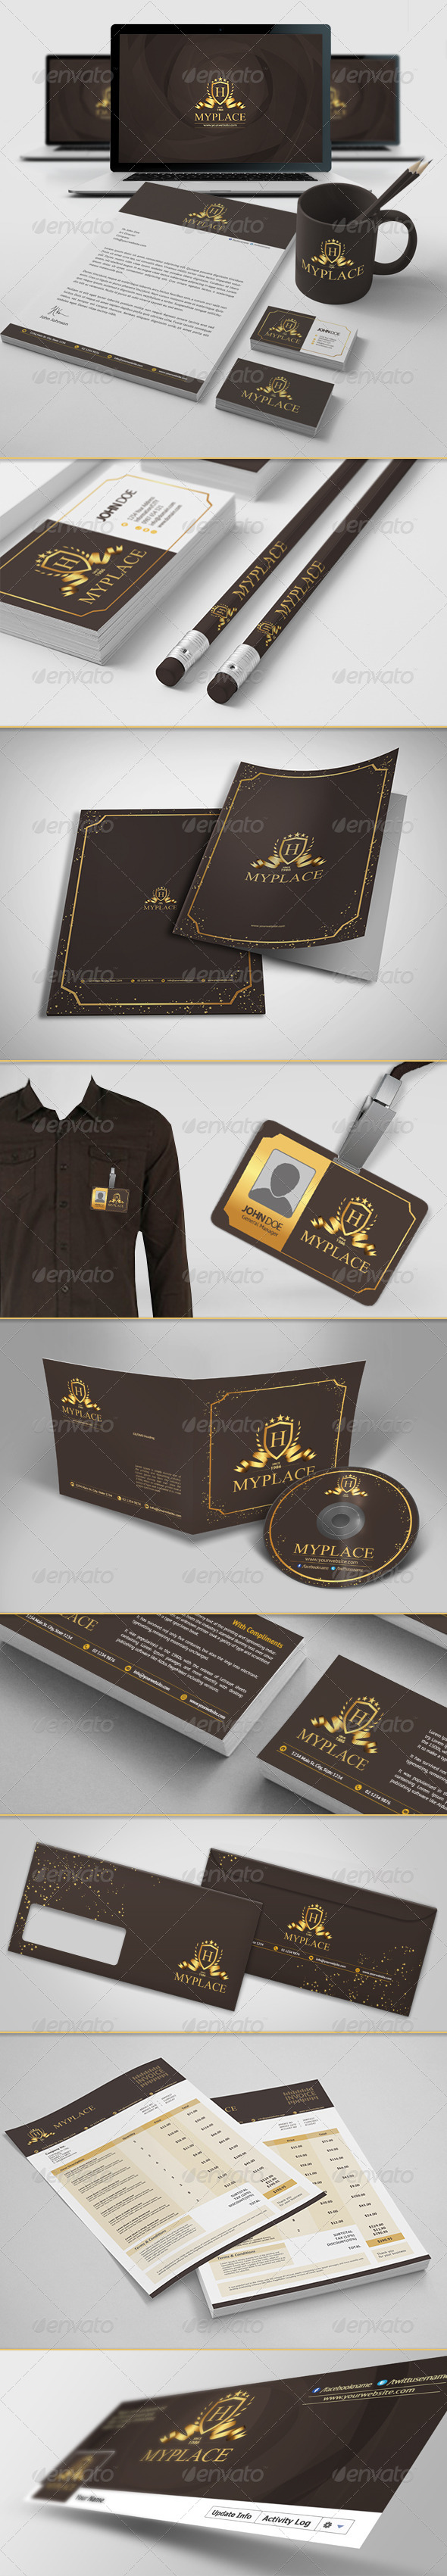 GraphicRiver Corporate Identity 6345514